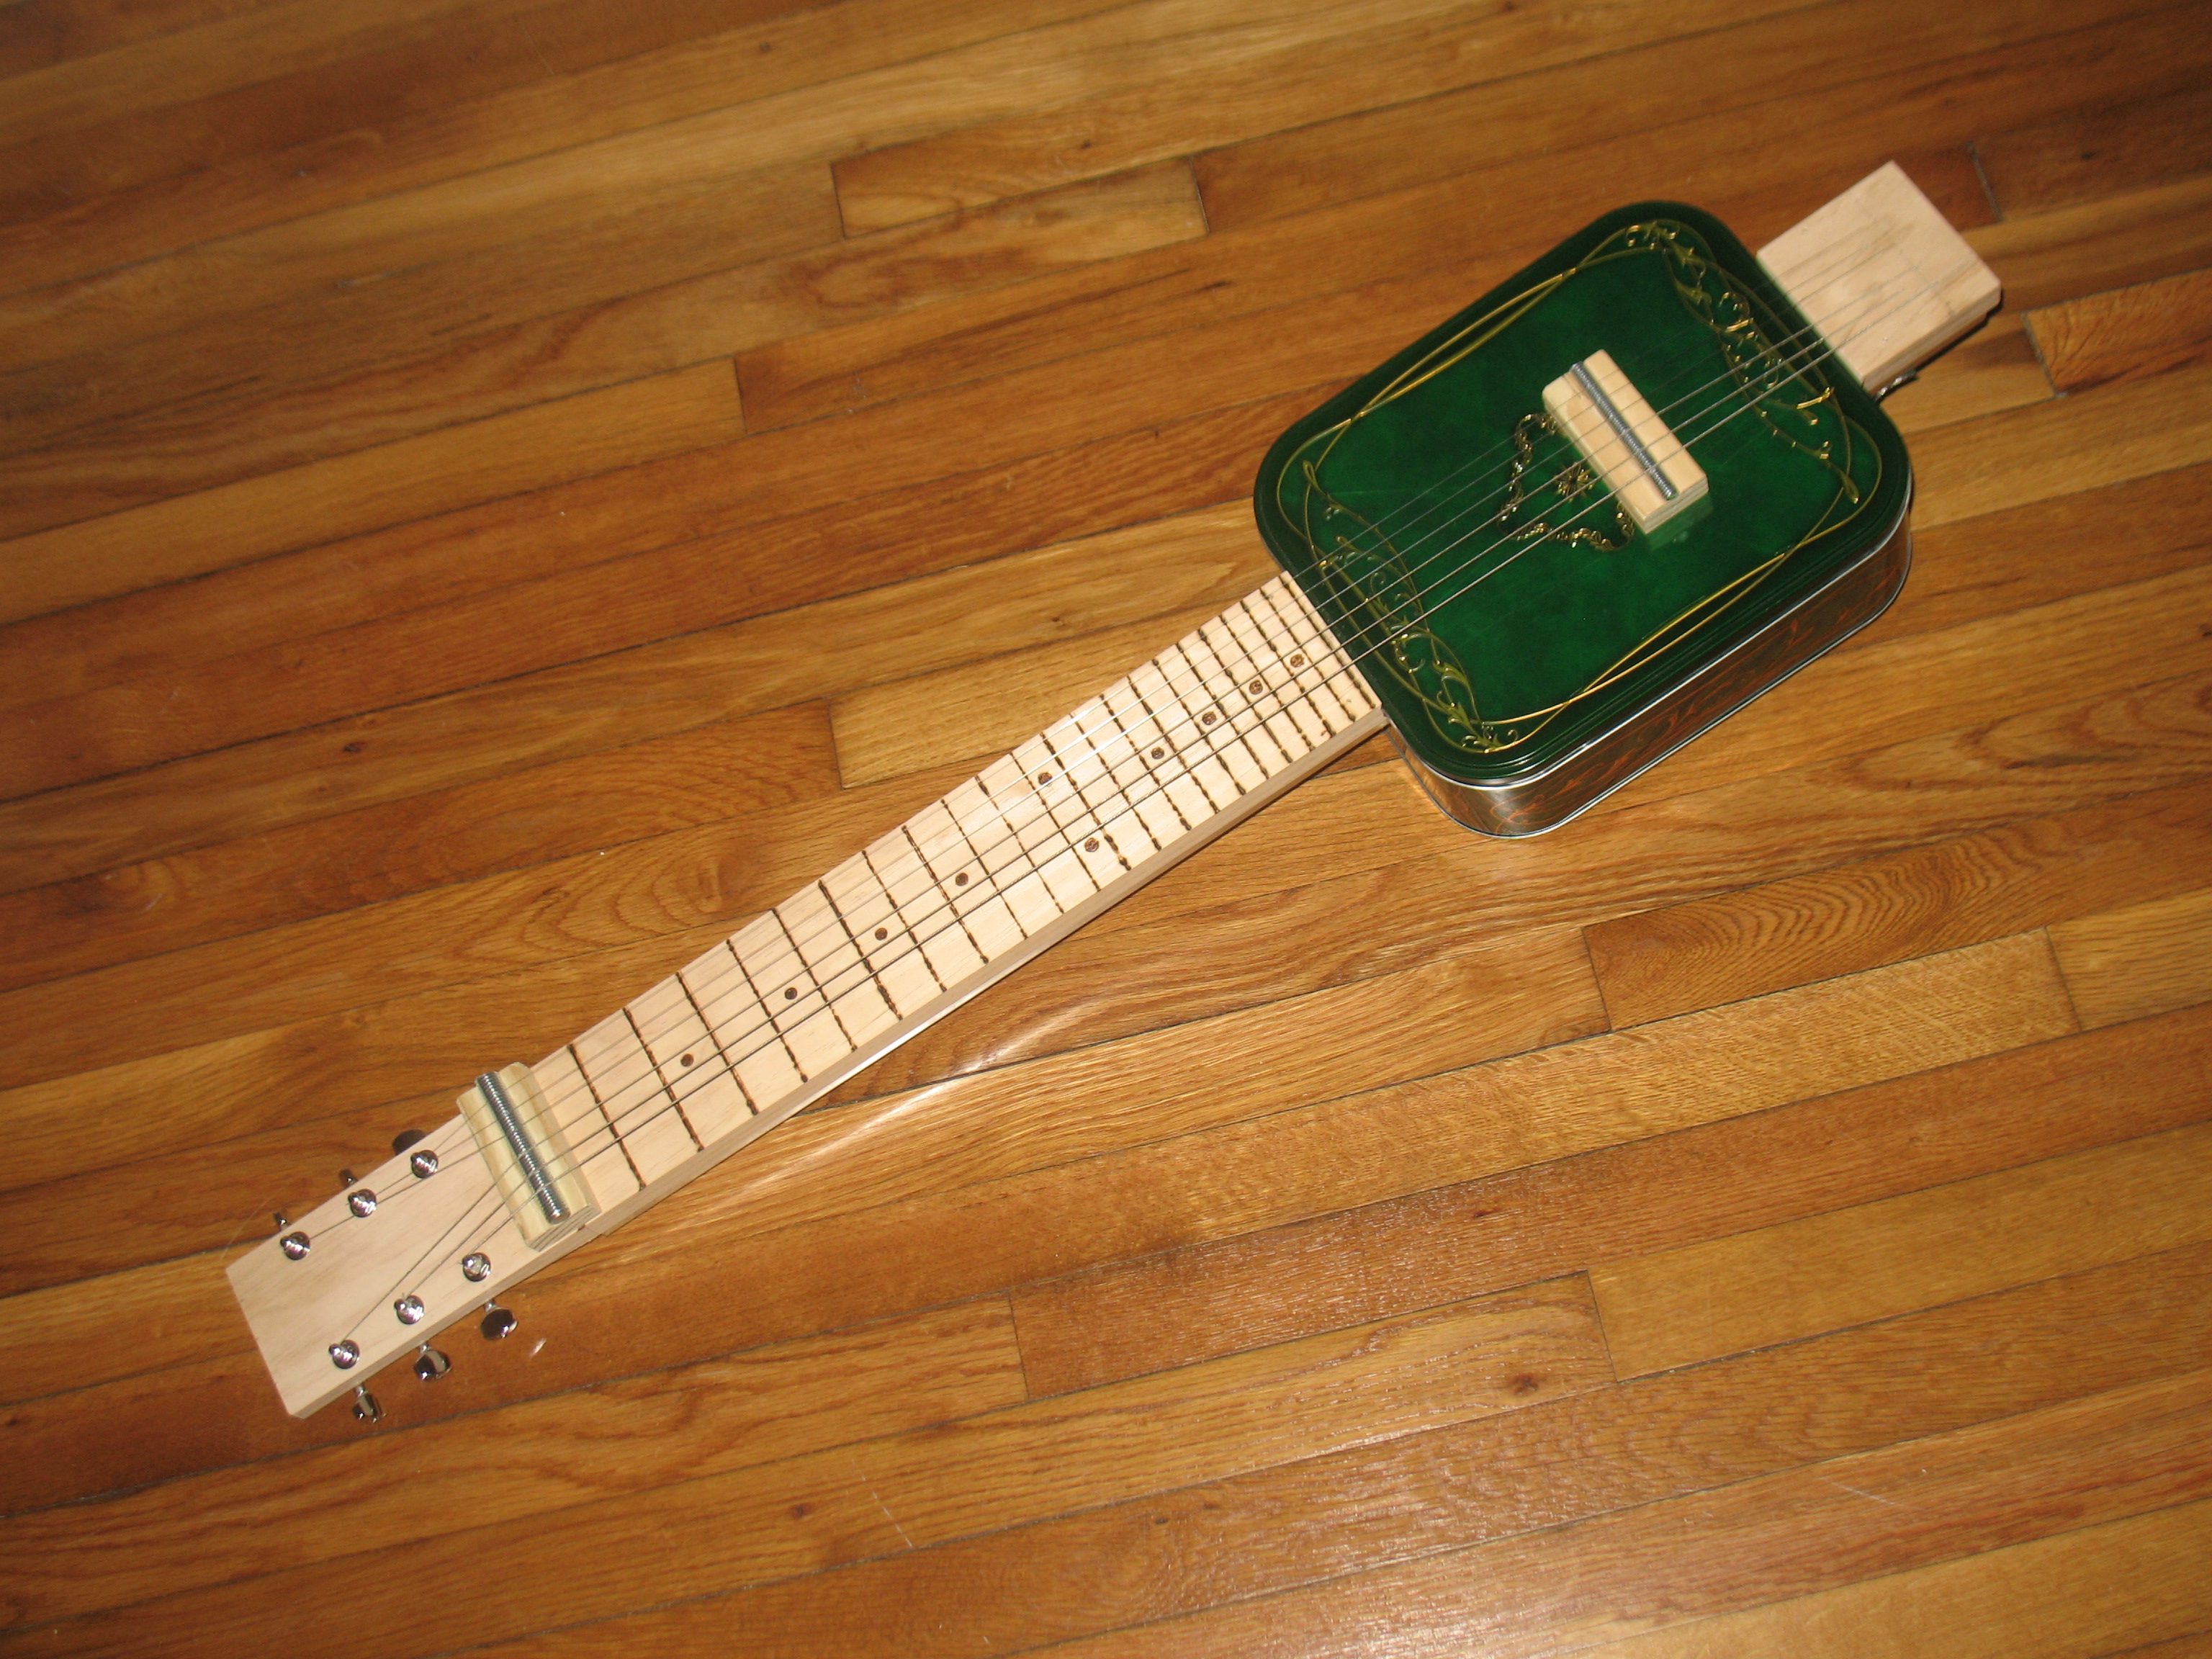 How to make a biscuit box lap steel guitar